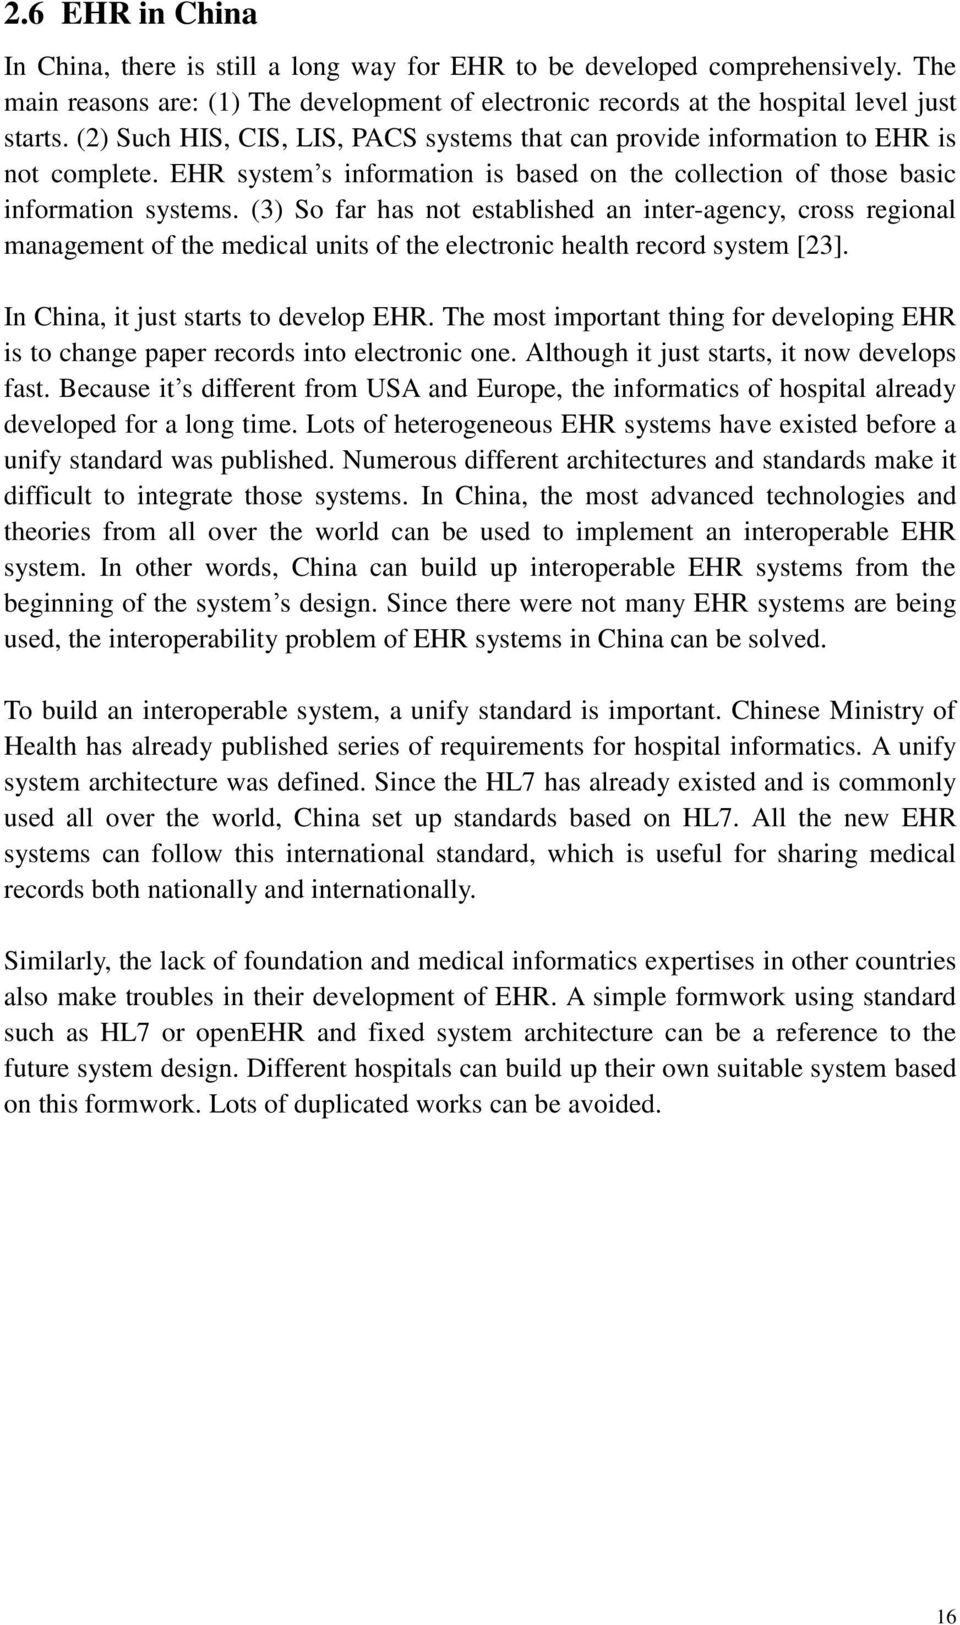 (3) So far has not established an inter-agency, cross regional management of the medical units of the electronic health record system [23]. In China, it just starts to develop EHR.